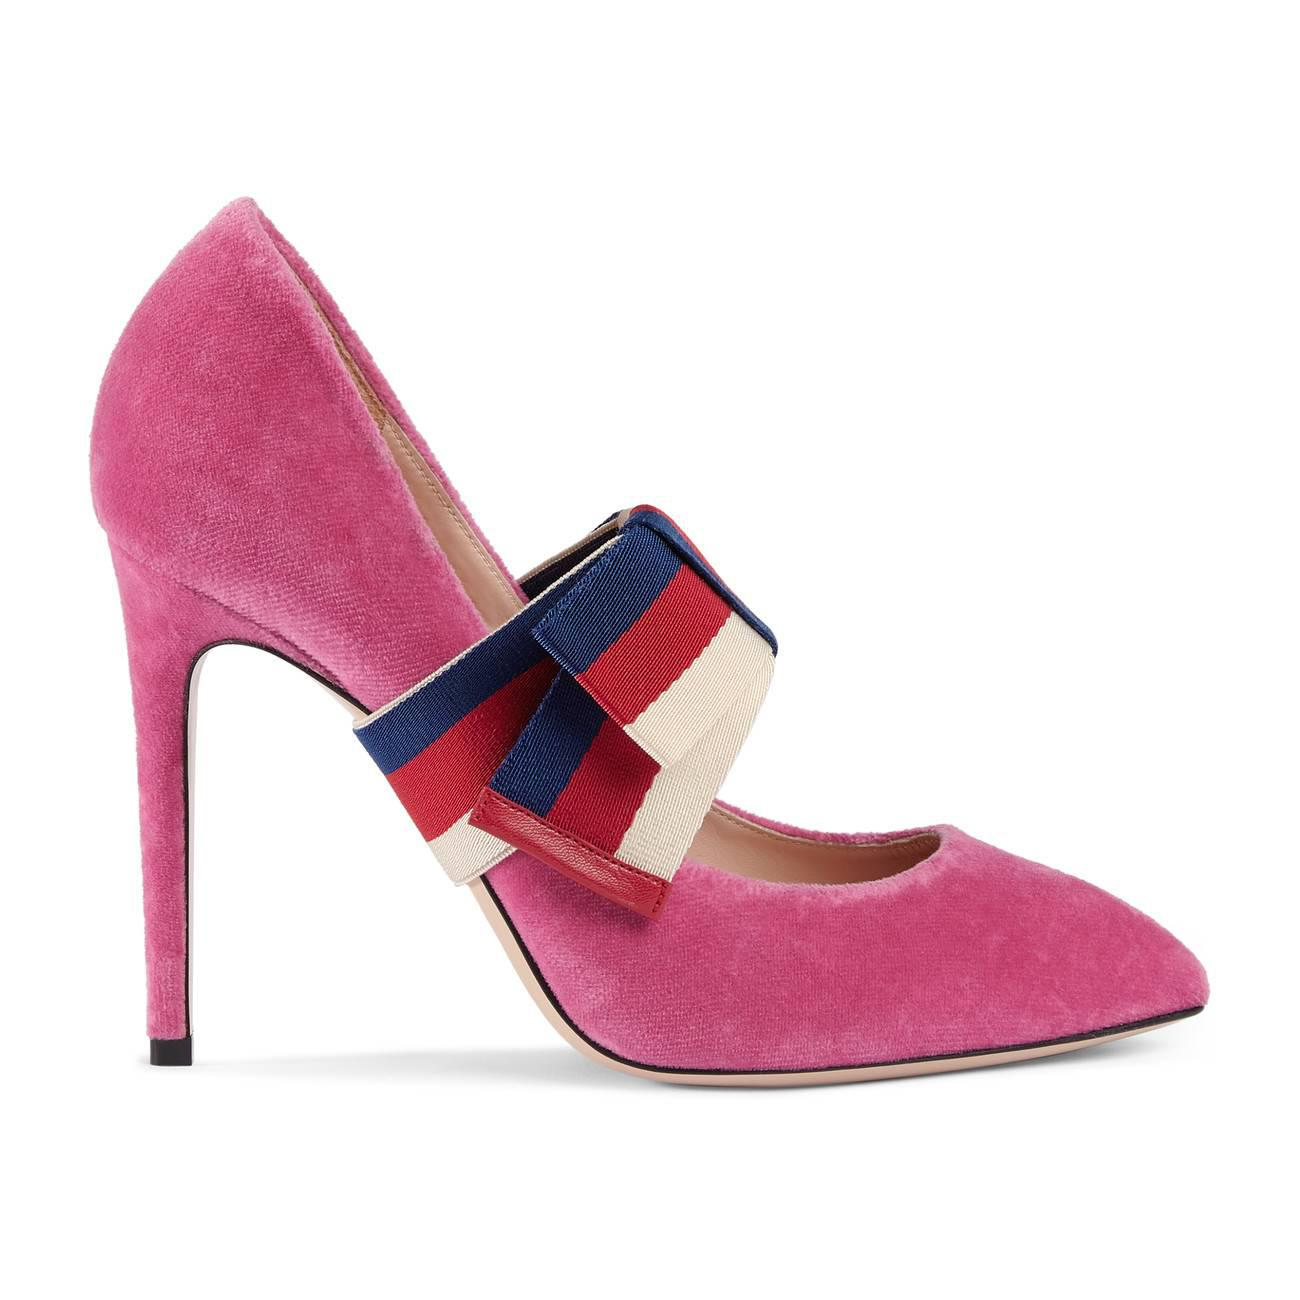 878c0302ca7 Lyst - Gucci Velvet Pump With Removable Sylvie Bow in Pink